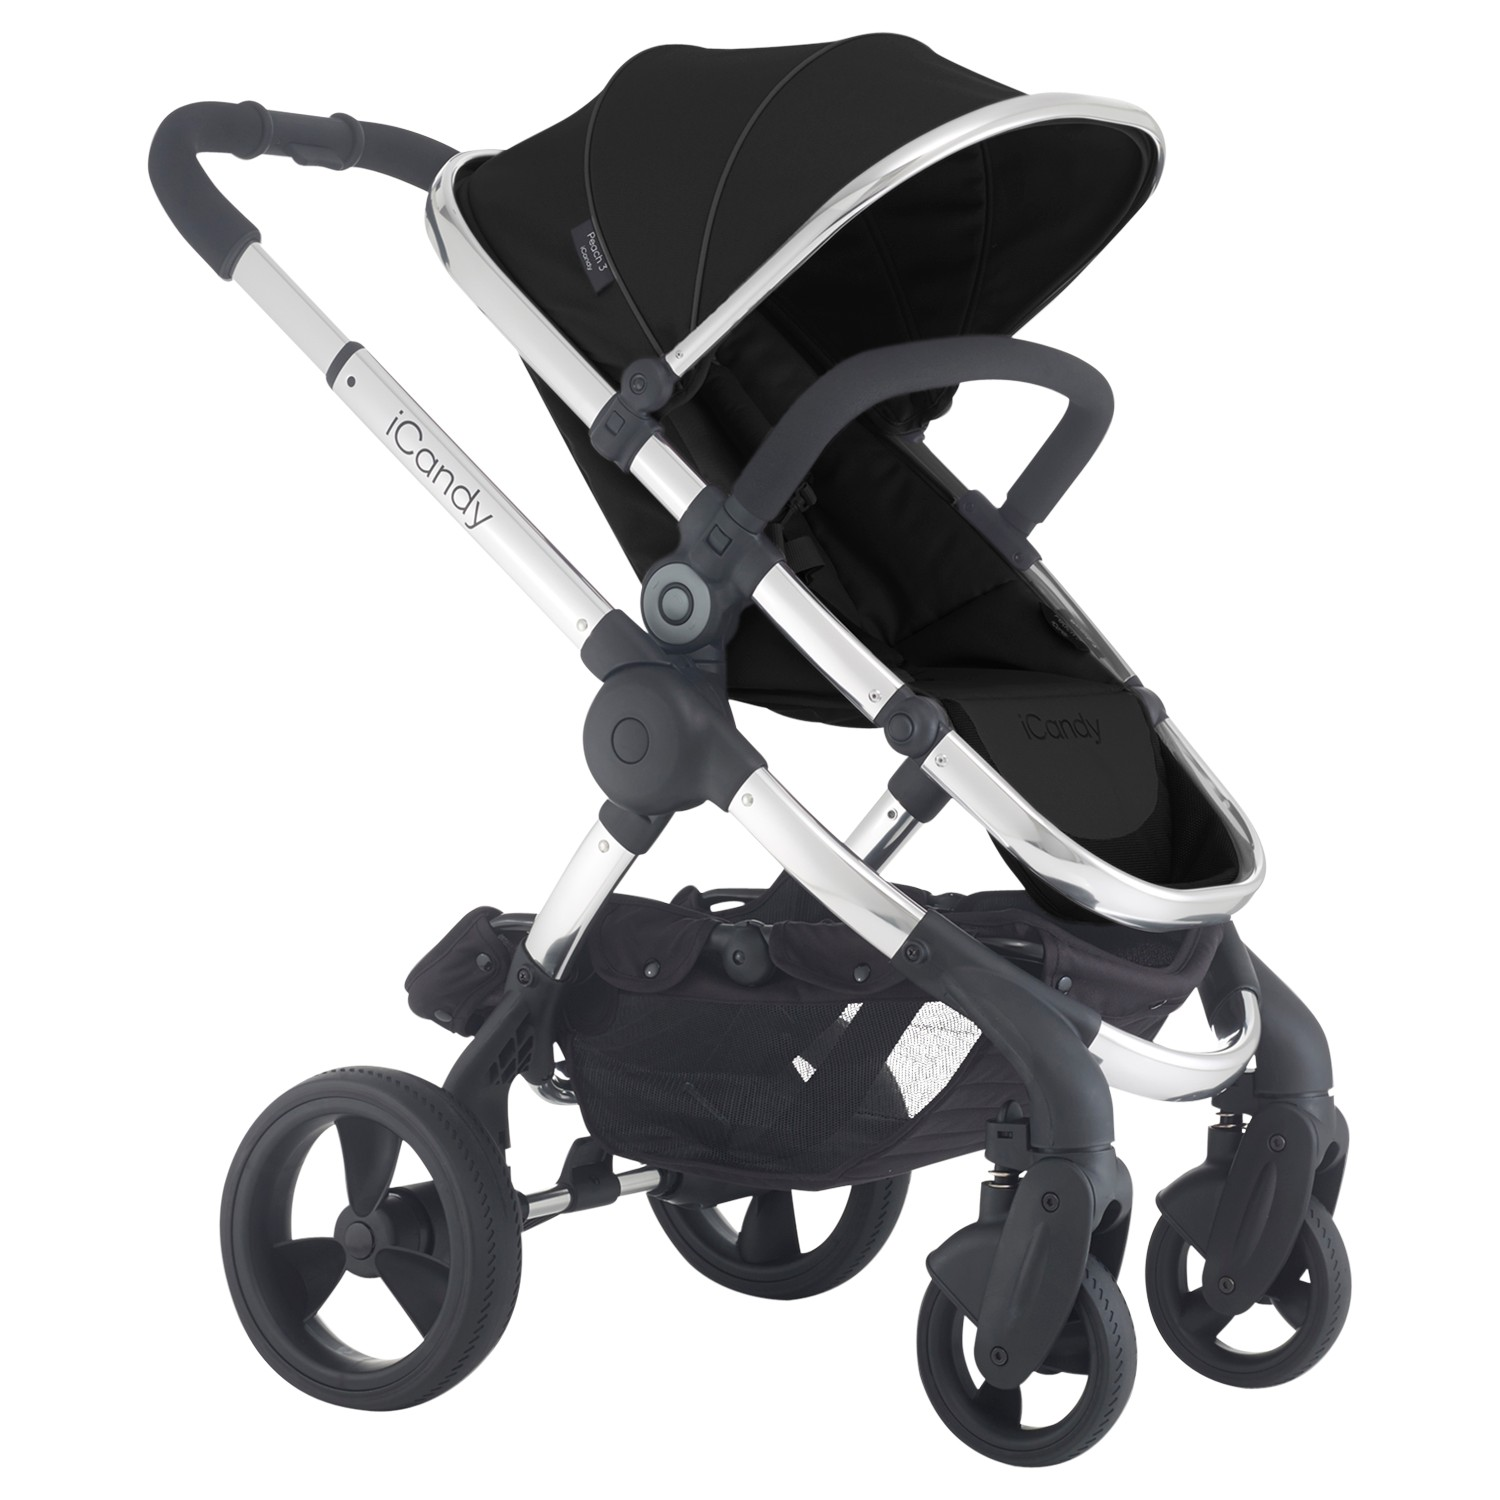 iCandy Peach 3 Pushchair with Chrome Chassis & Black Magic Hood